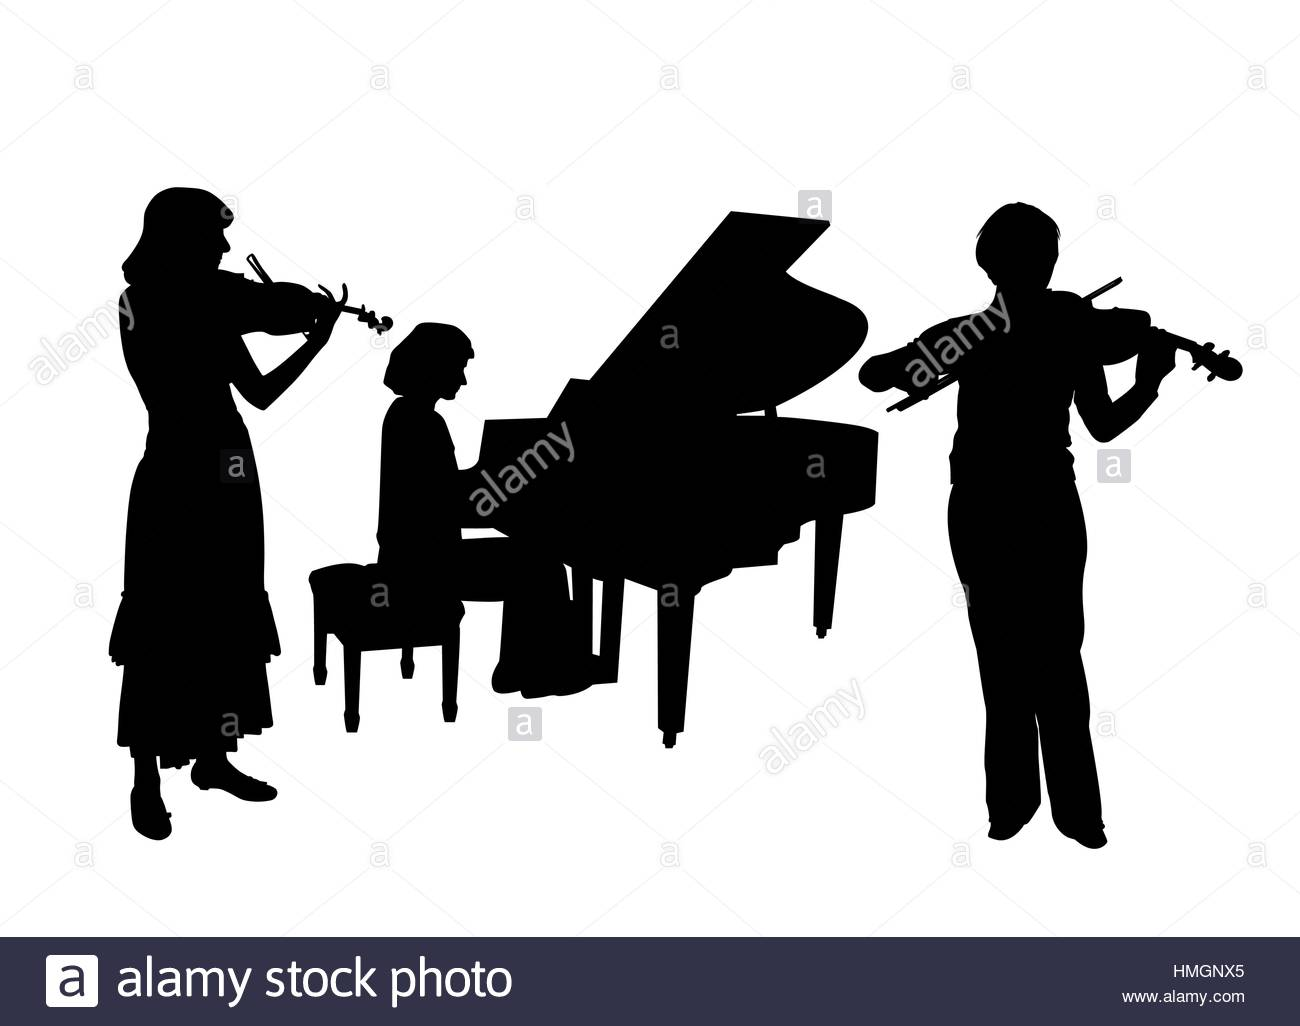 1300x1026 The Vector Musicians Silhouette Stock Photos Amp The Vector